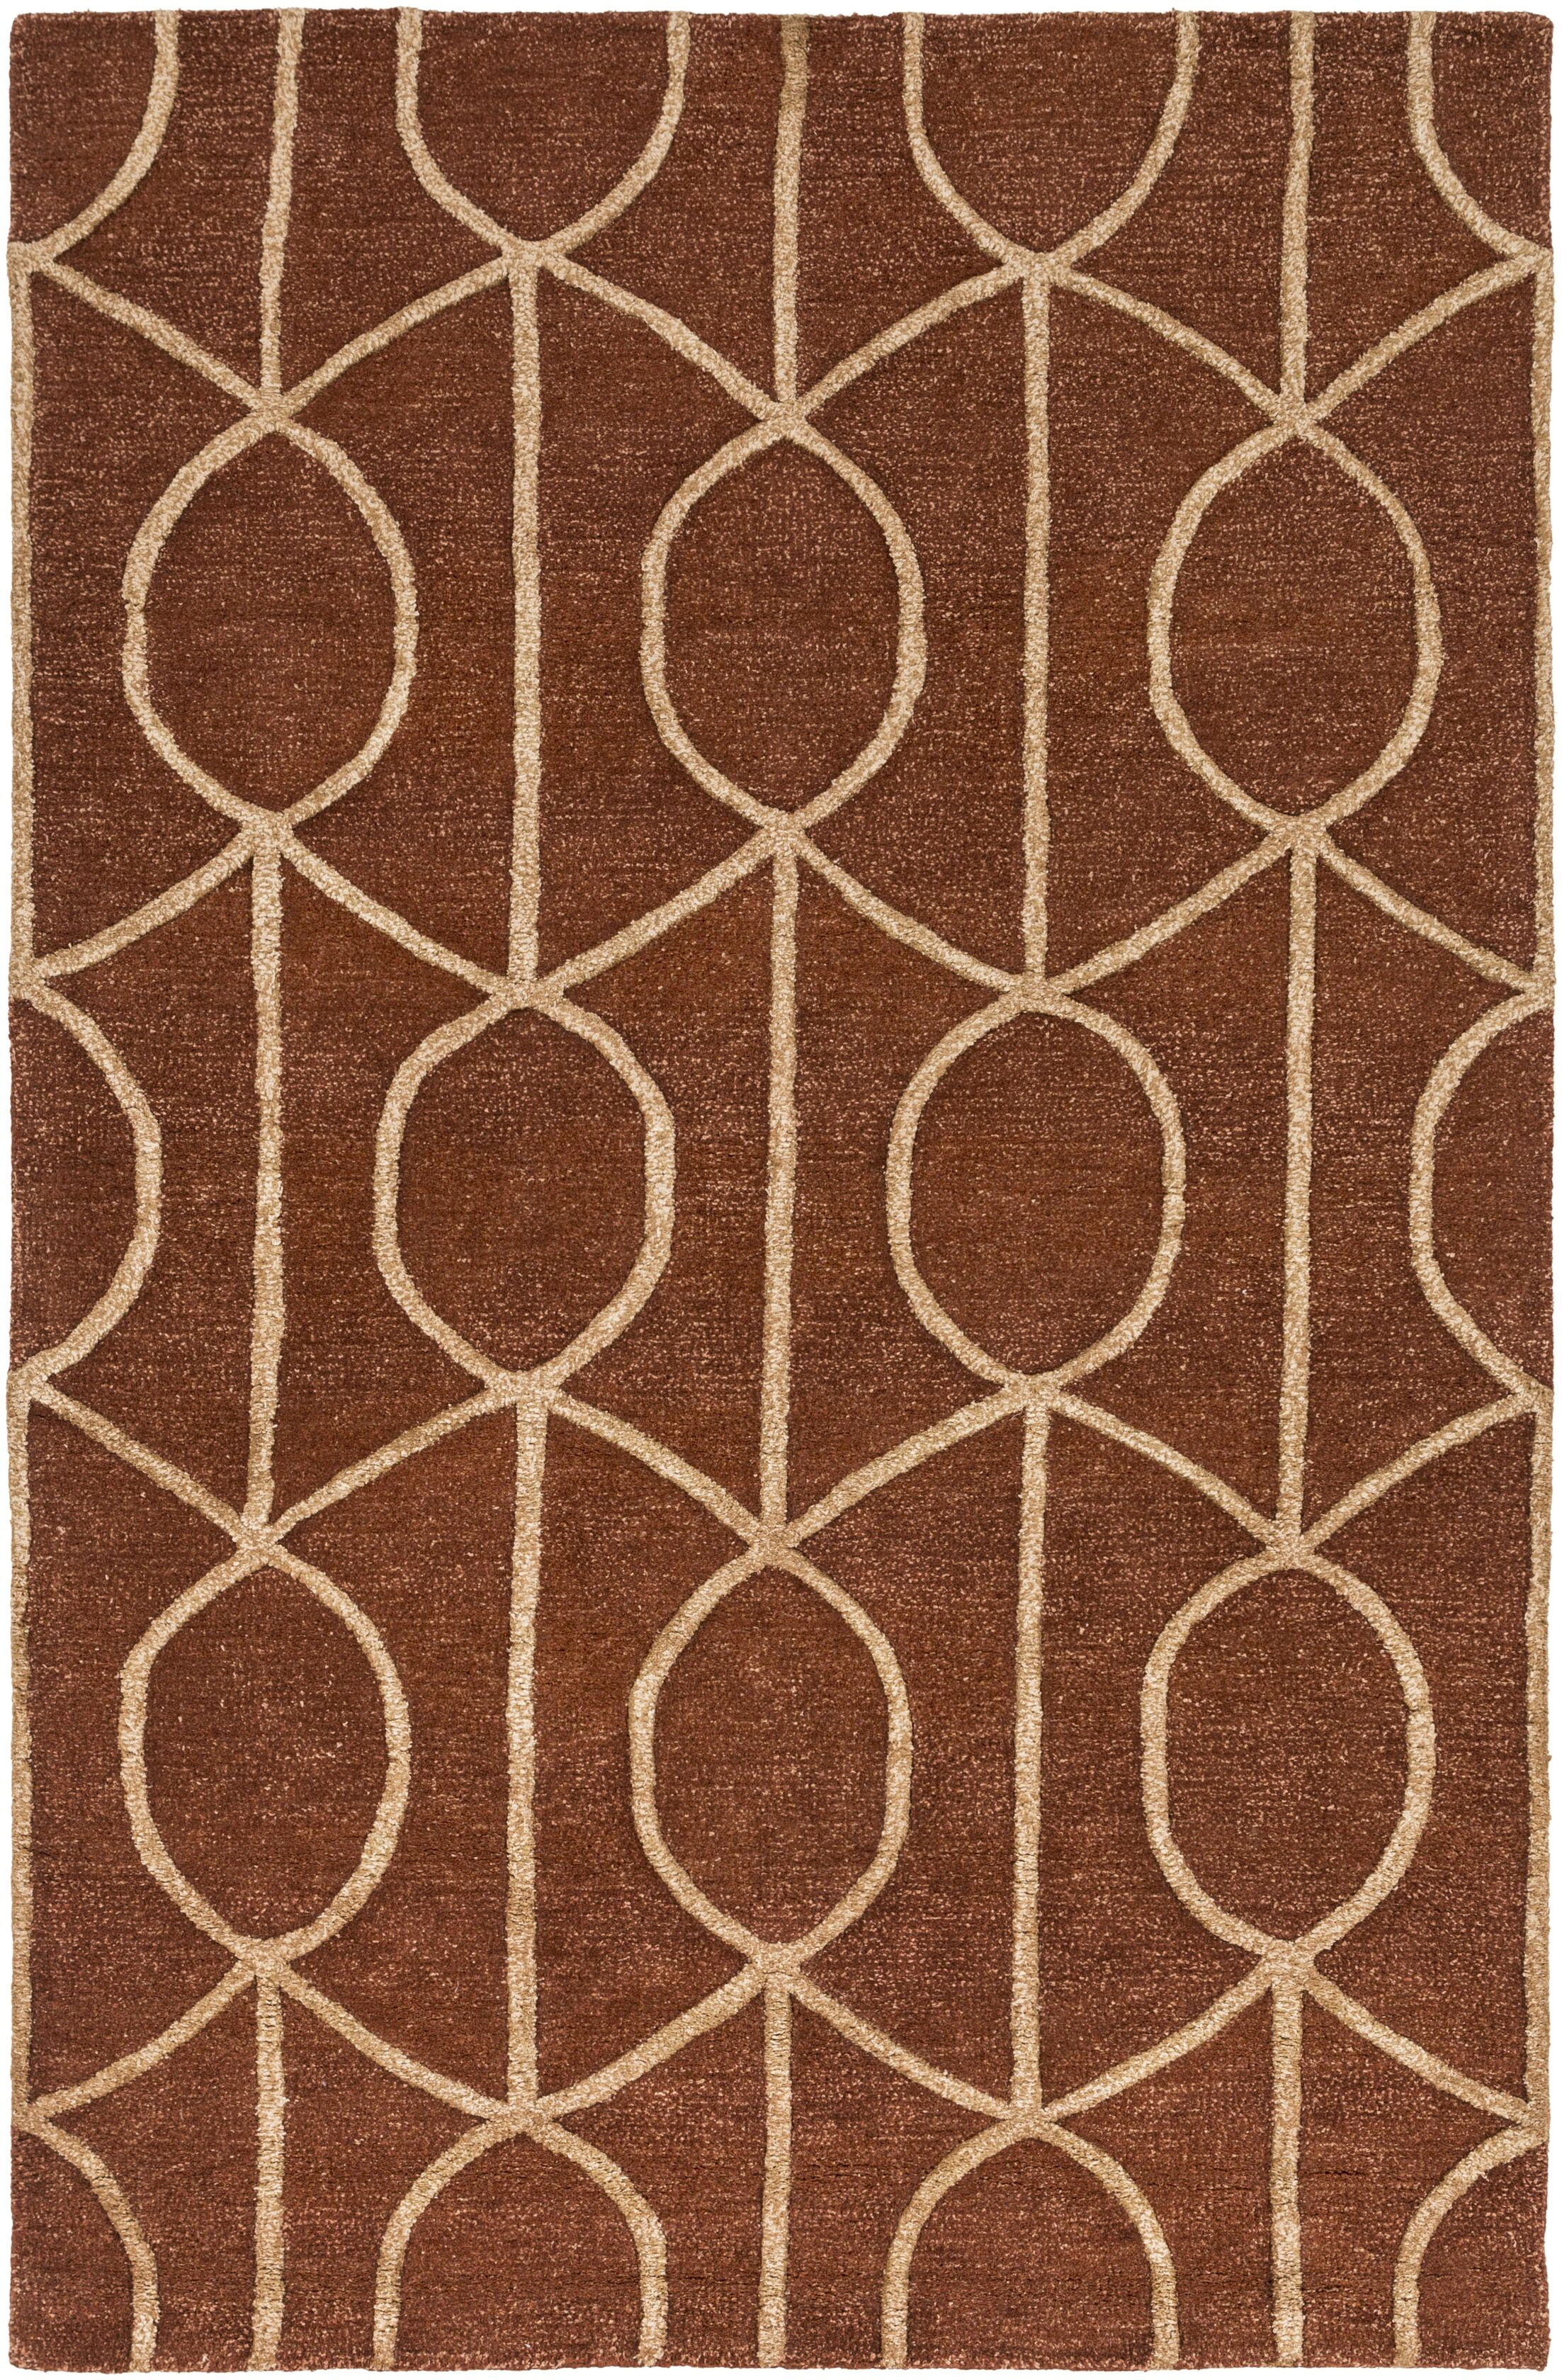 Abbey Hand-Tufted Rust Area Rug Rug Size: Rectangle 7'6